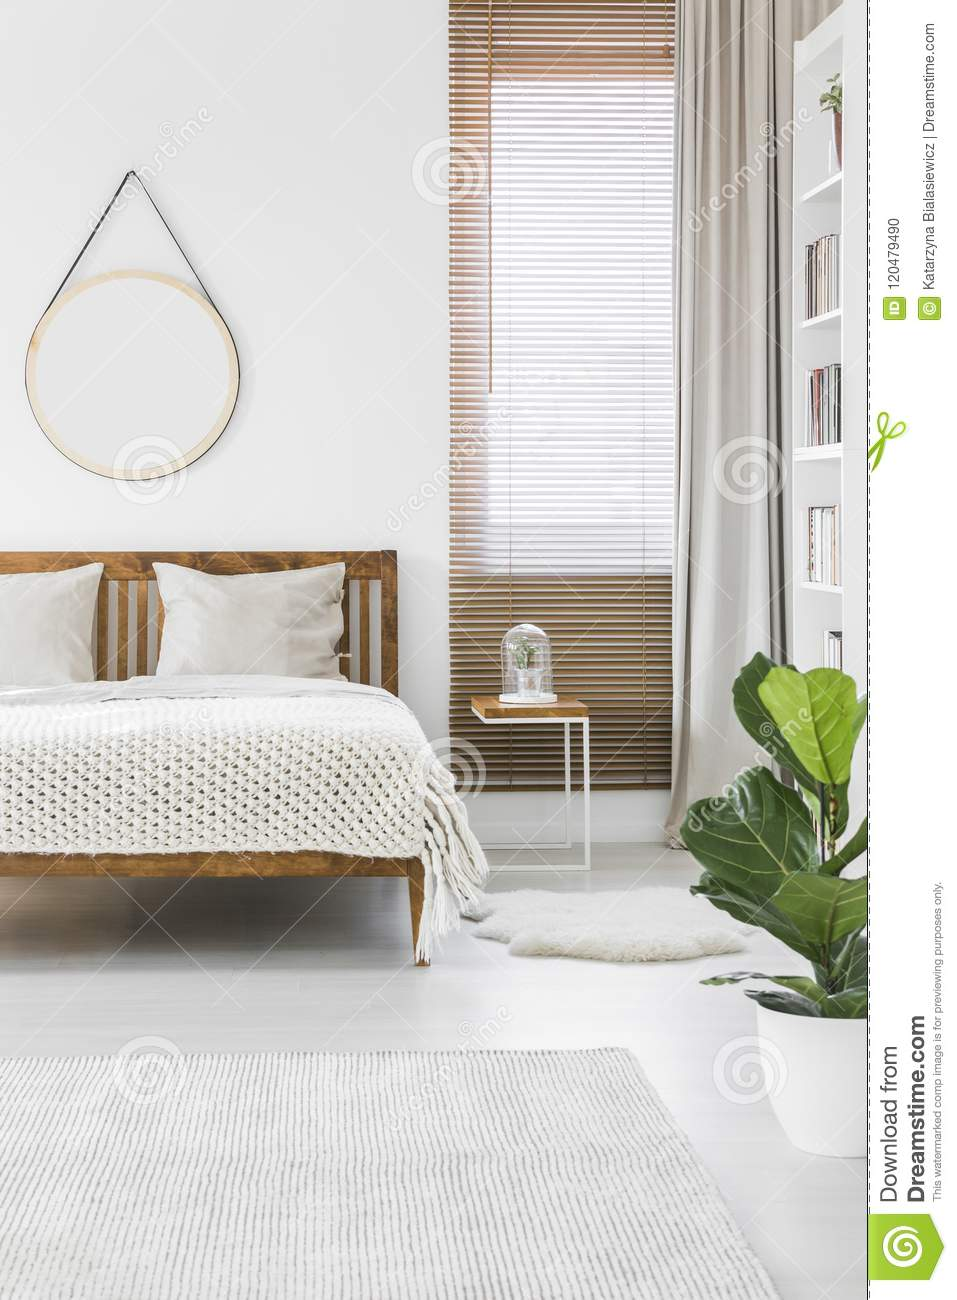 Knit blanket placed on wooden double bed in bright bedroom inter